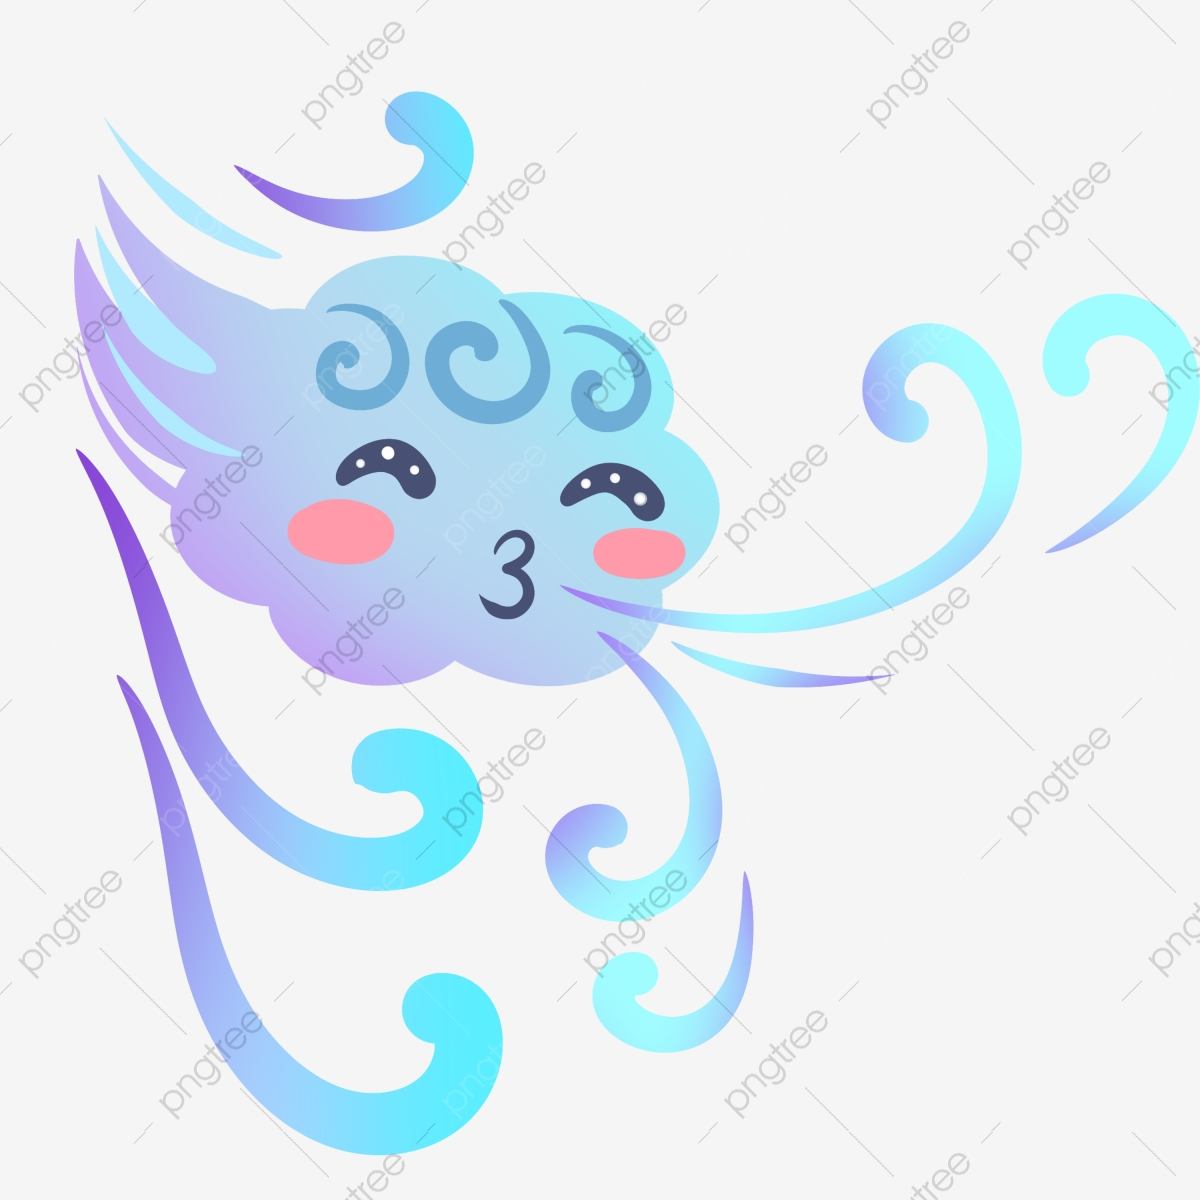 Gale weather illustration cartoon. Windy clipart cute